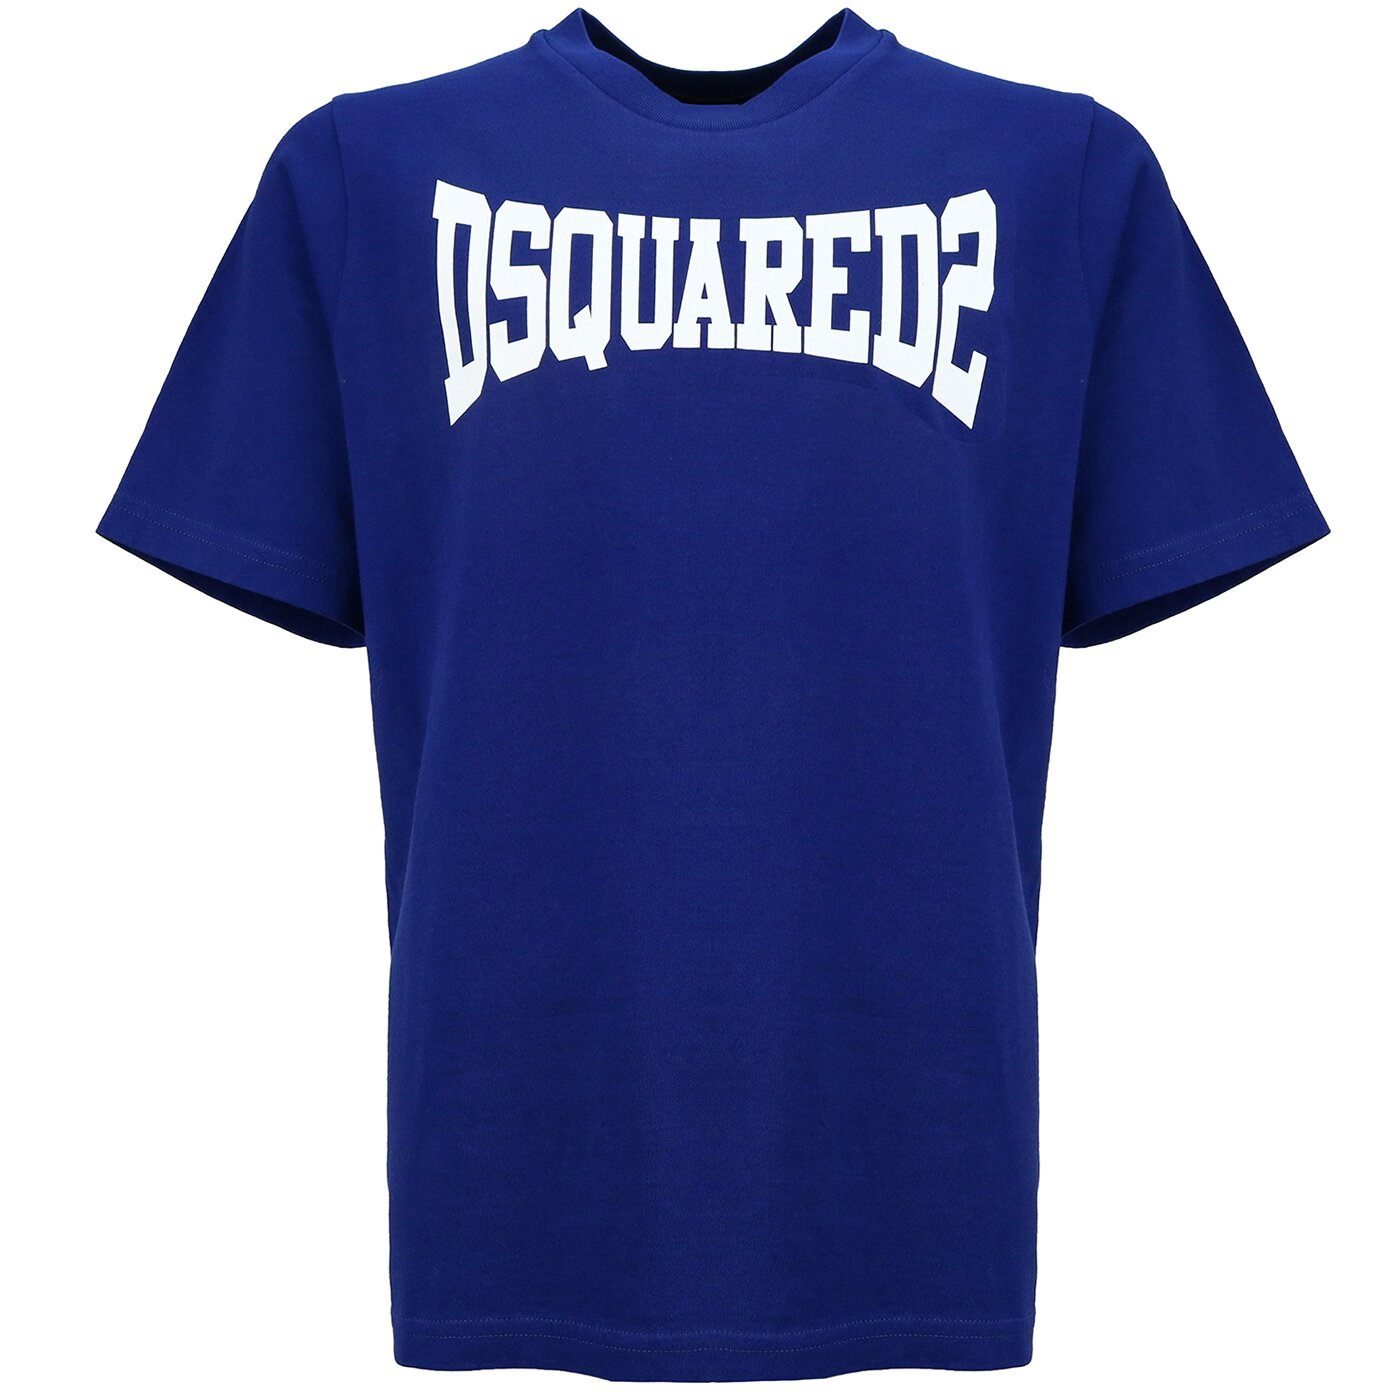 Dsquared2 Shirt DQ0156 Blauw Oversized Fit